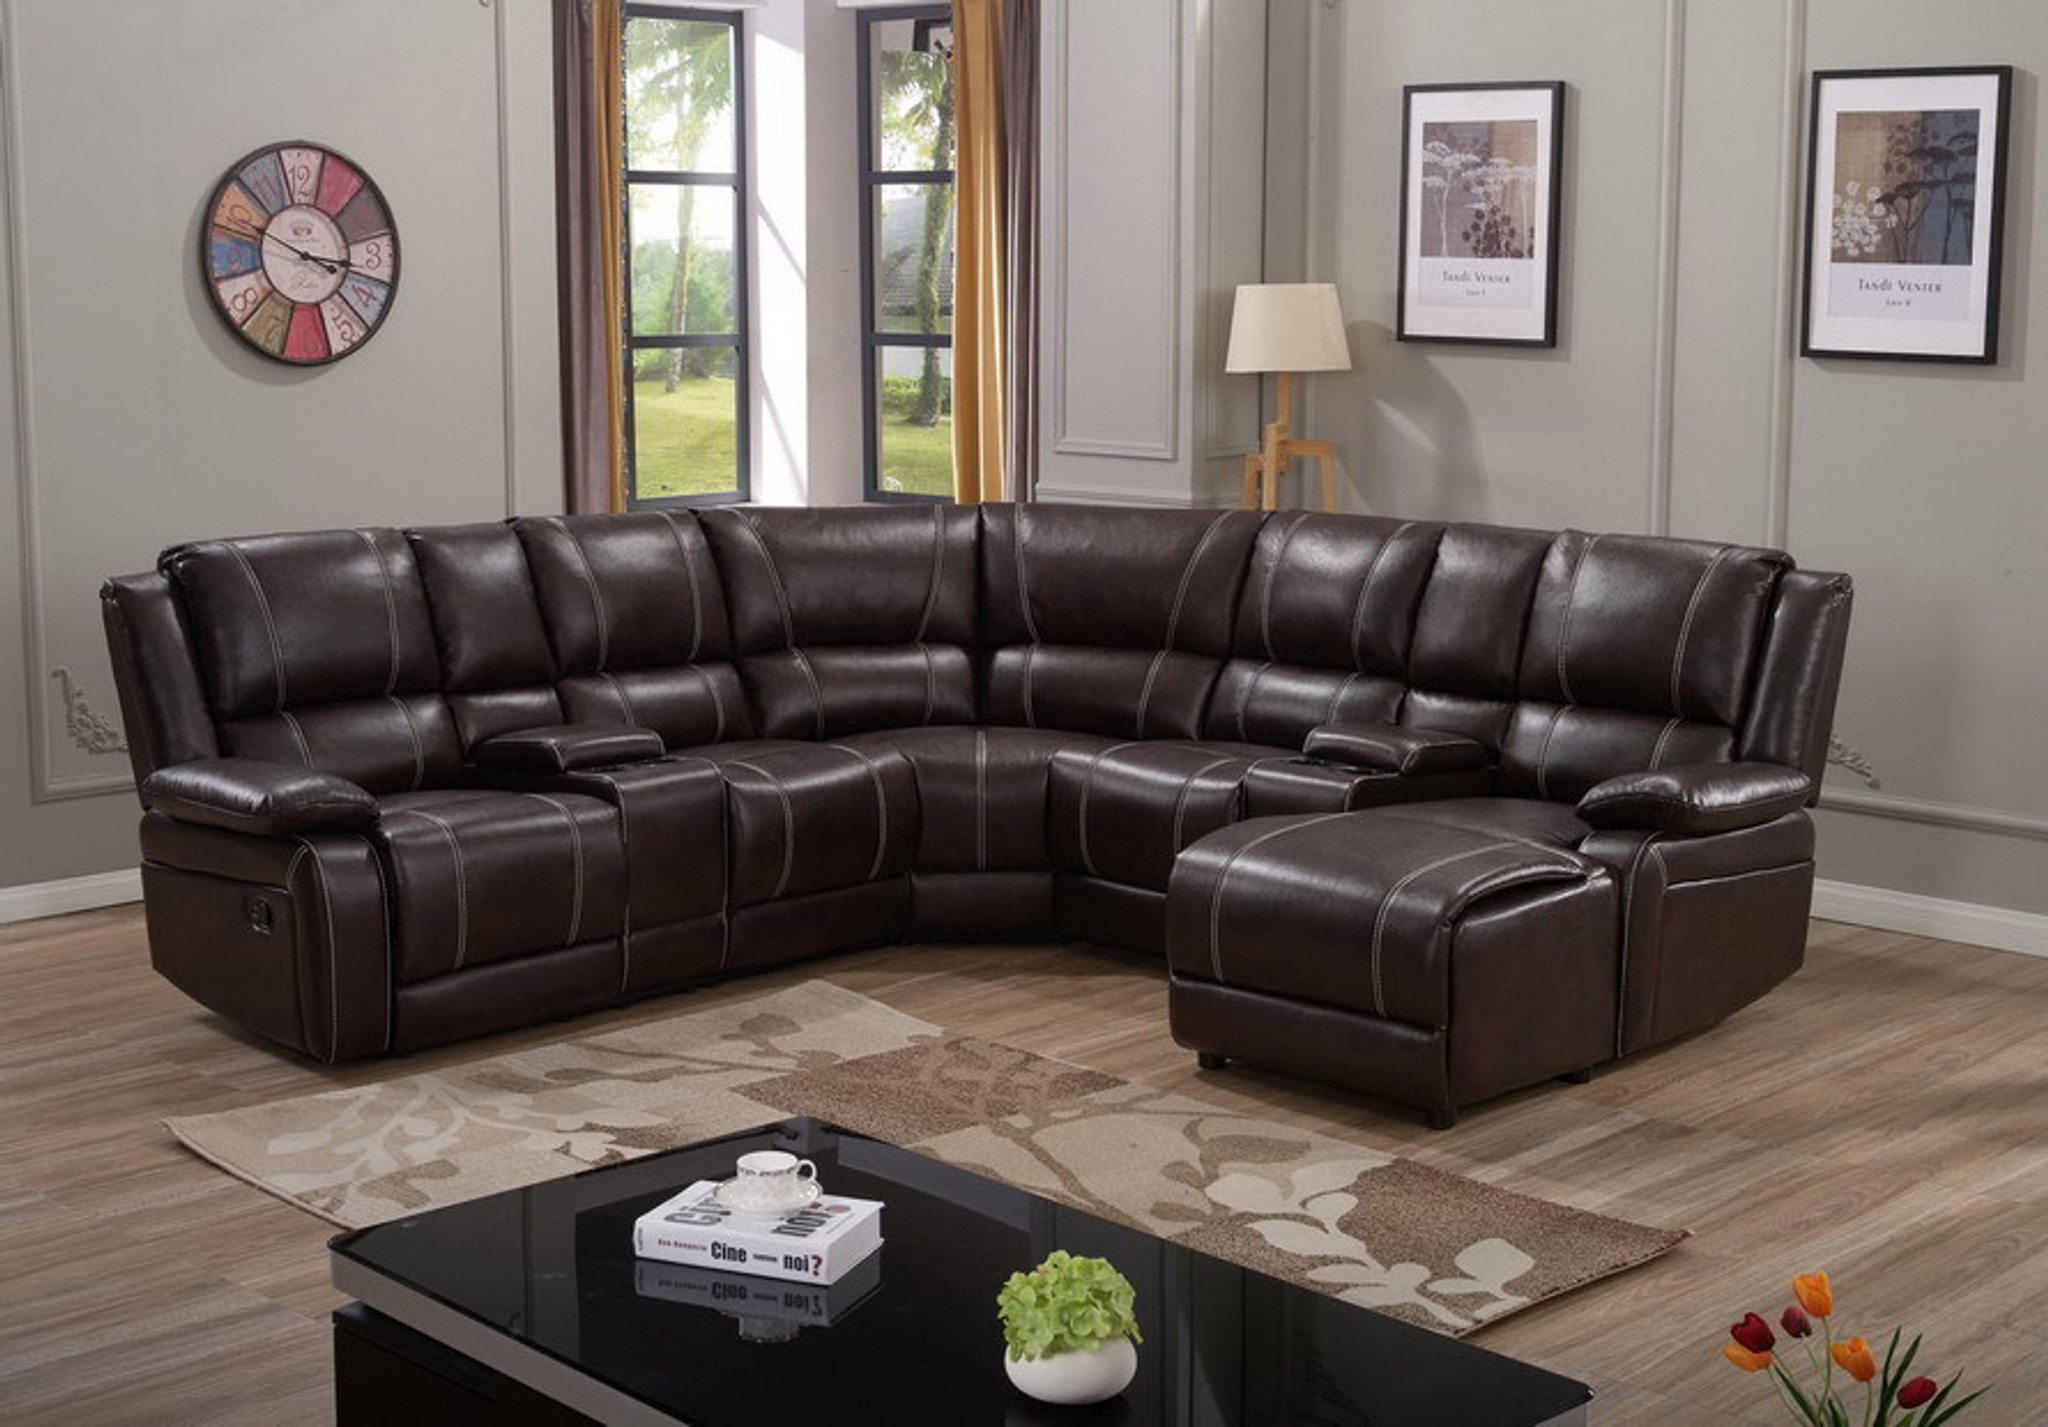 MARCUS 5 PCS COMPLETE BROWN ESPRESSO LEATHER SECTIONAL RECLINER ...